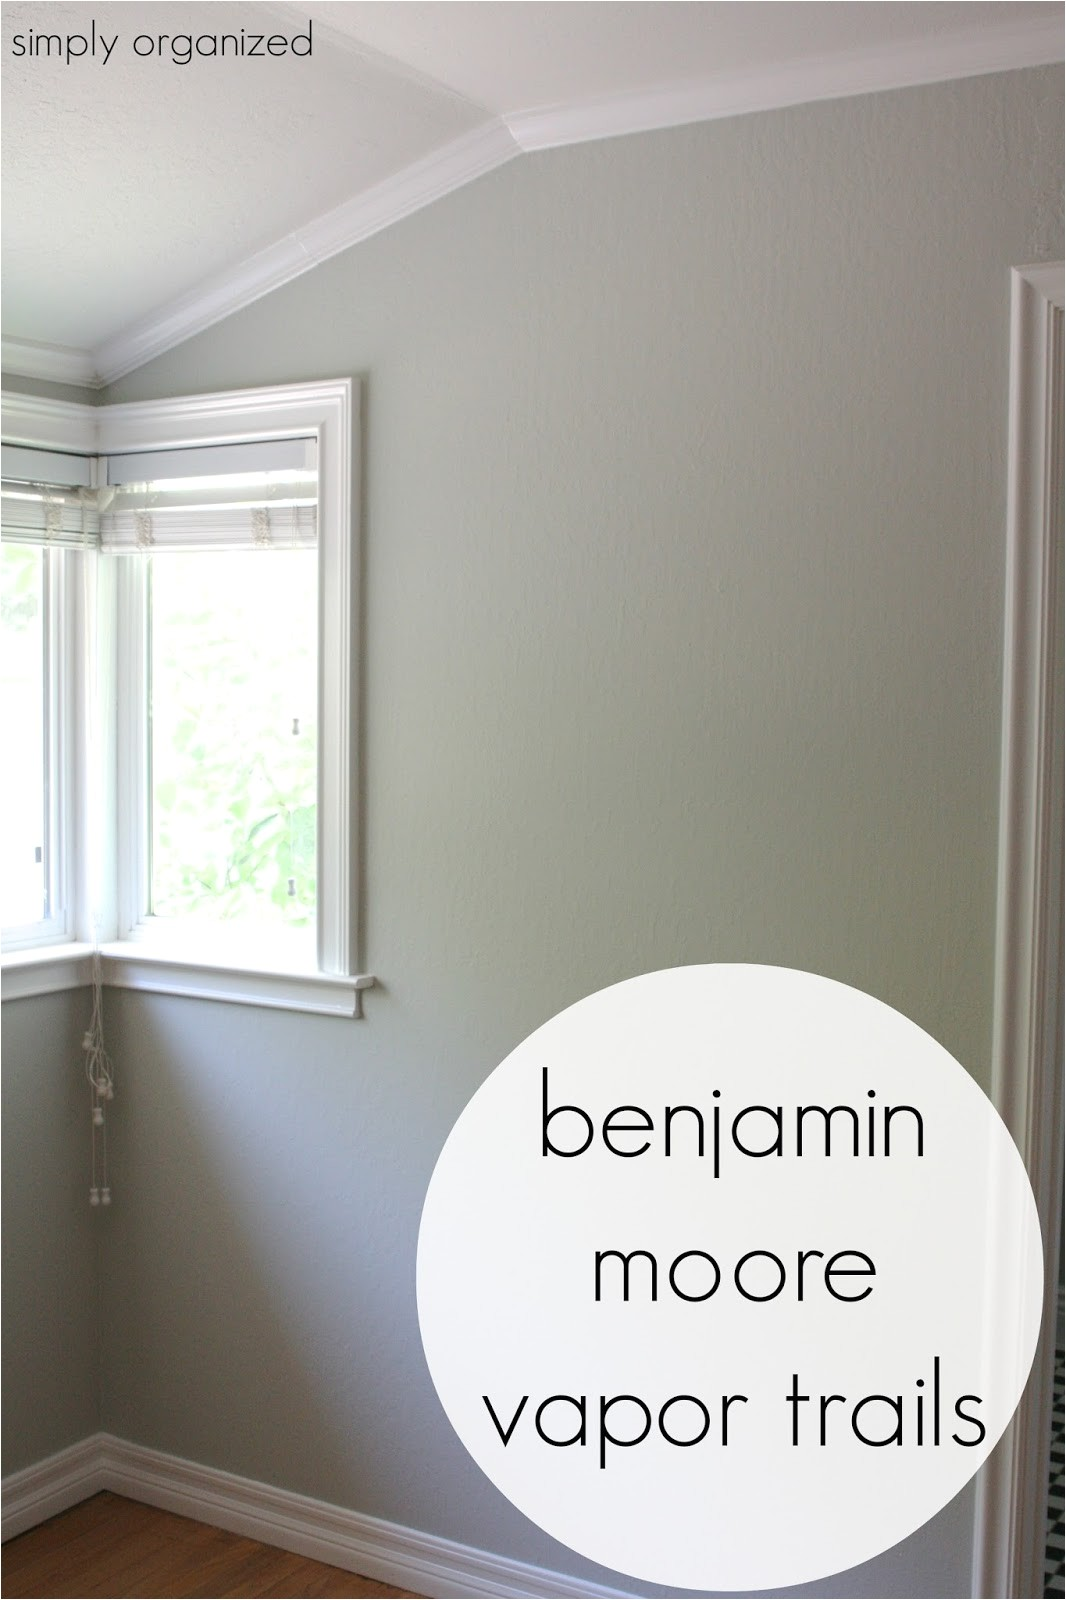 Benjamin Moore Vapor Trails My Home Interior Paint Color Palate Simply organized